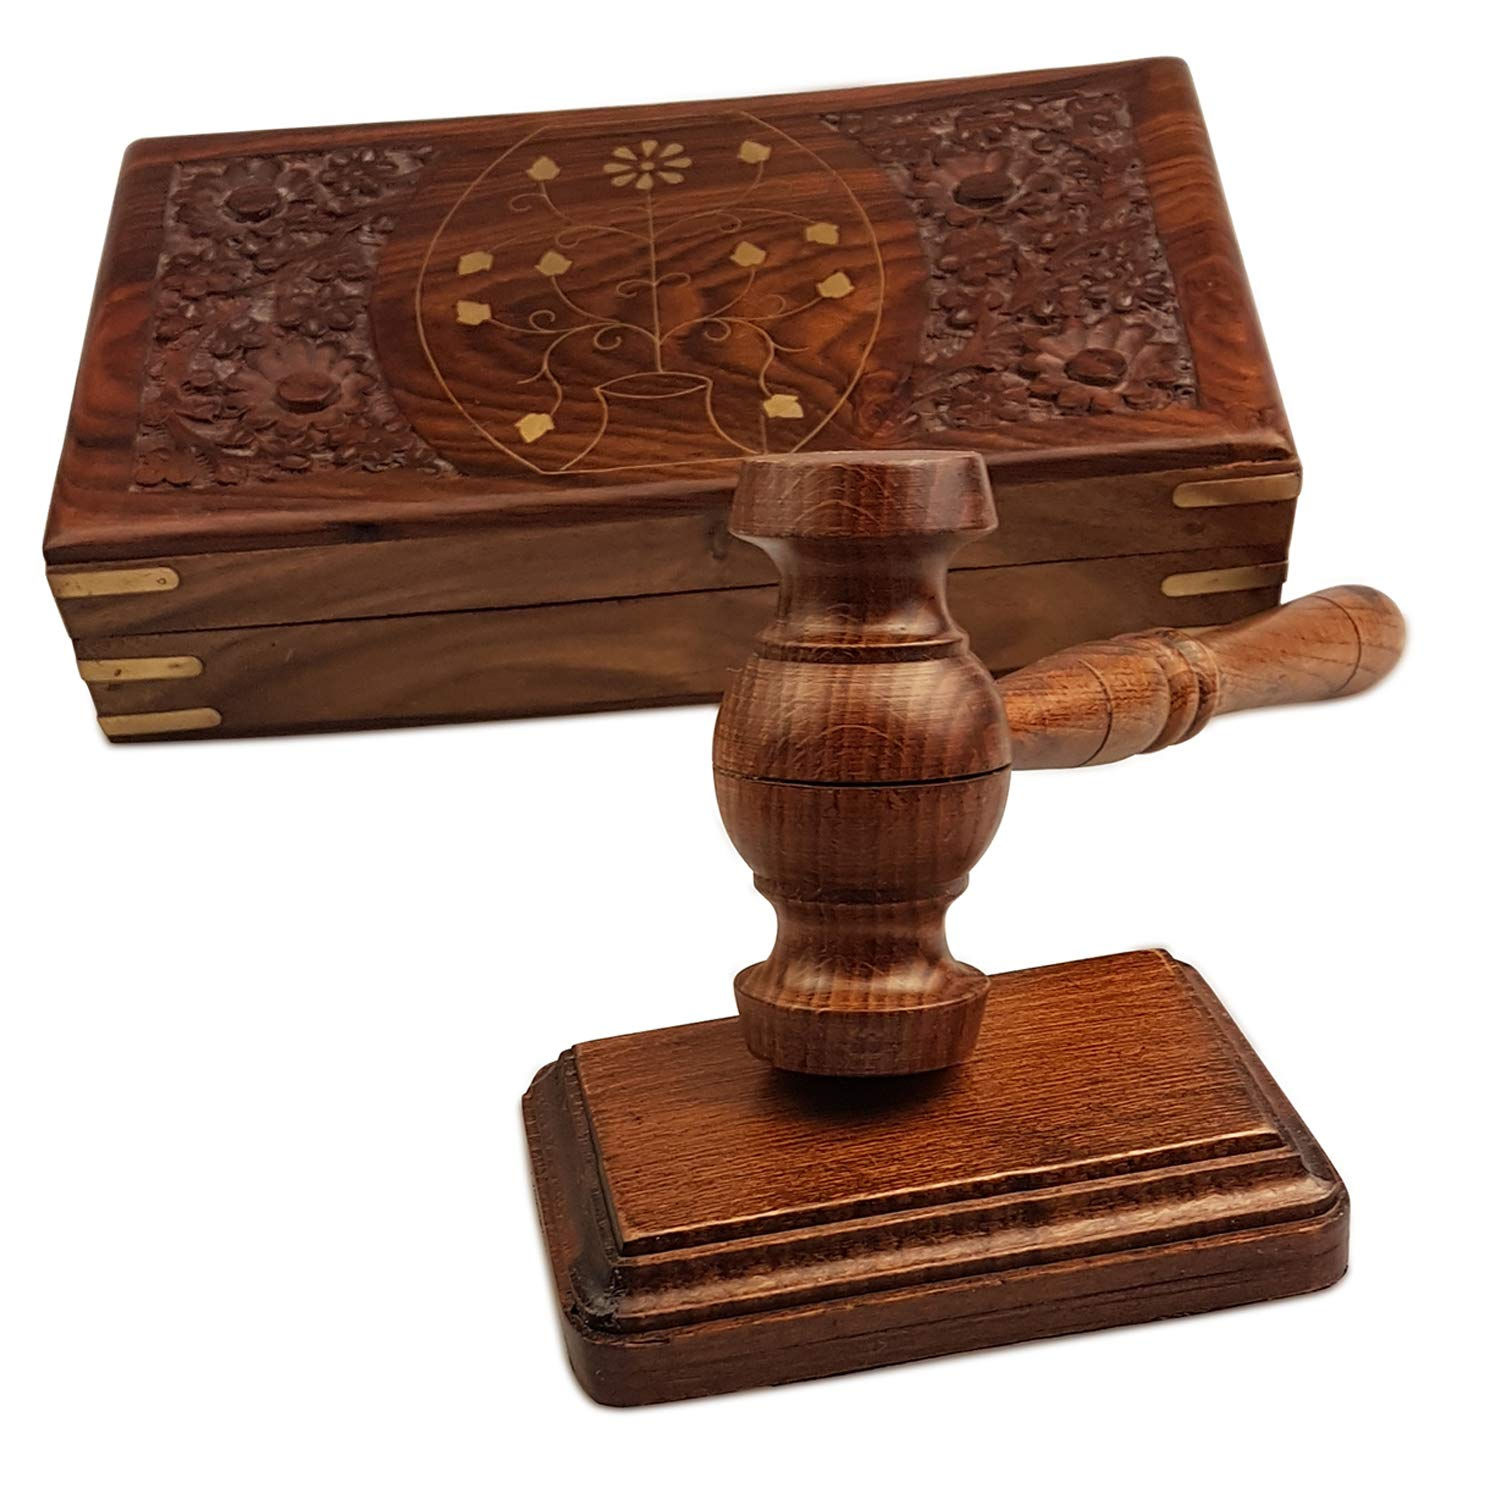 Special Hand Carving Work Wood Gavel Boxed Set - Rustic Gavel Gift Box Set Walnut Wooden Used - in Box Gavel and Sound Round Block Set Perfect for Lawyer Student Judge Auction Sale Meeting Best Idea by MoonWood